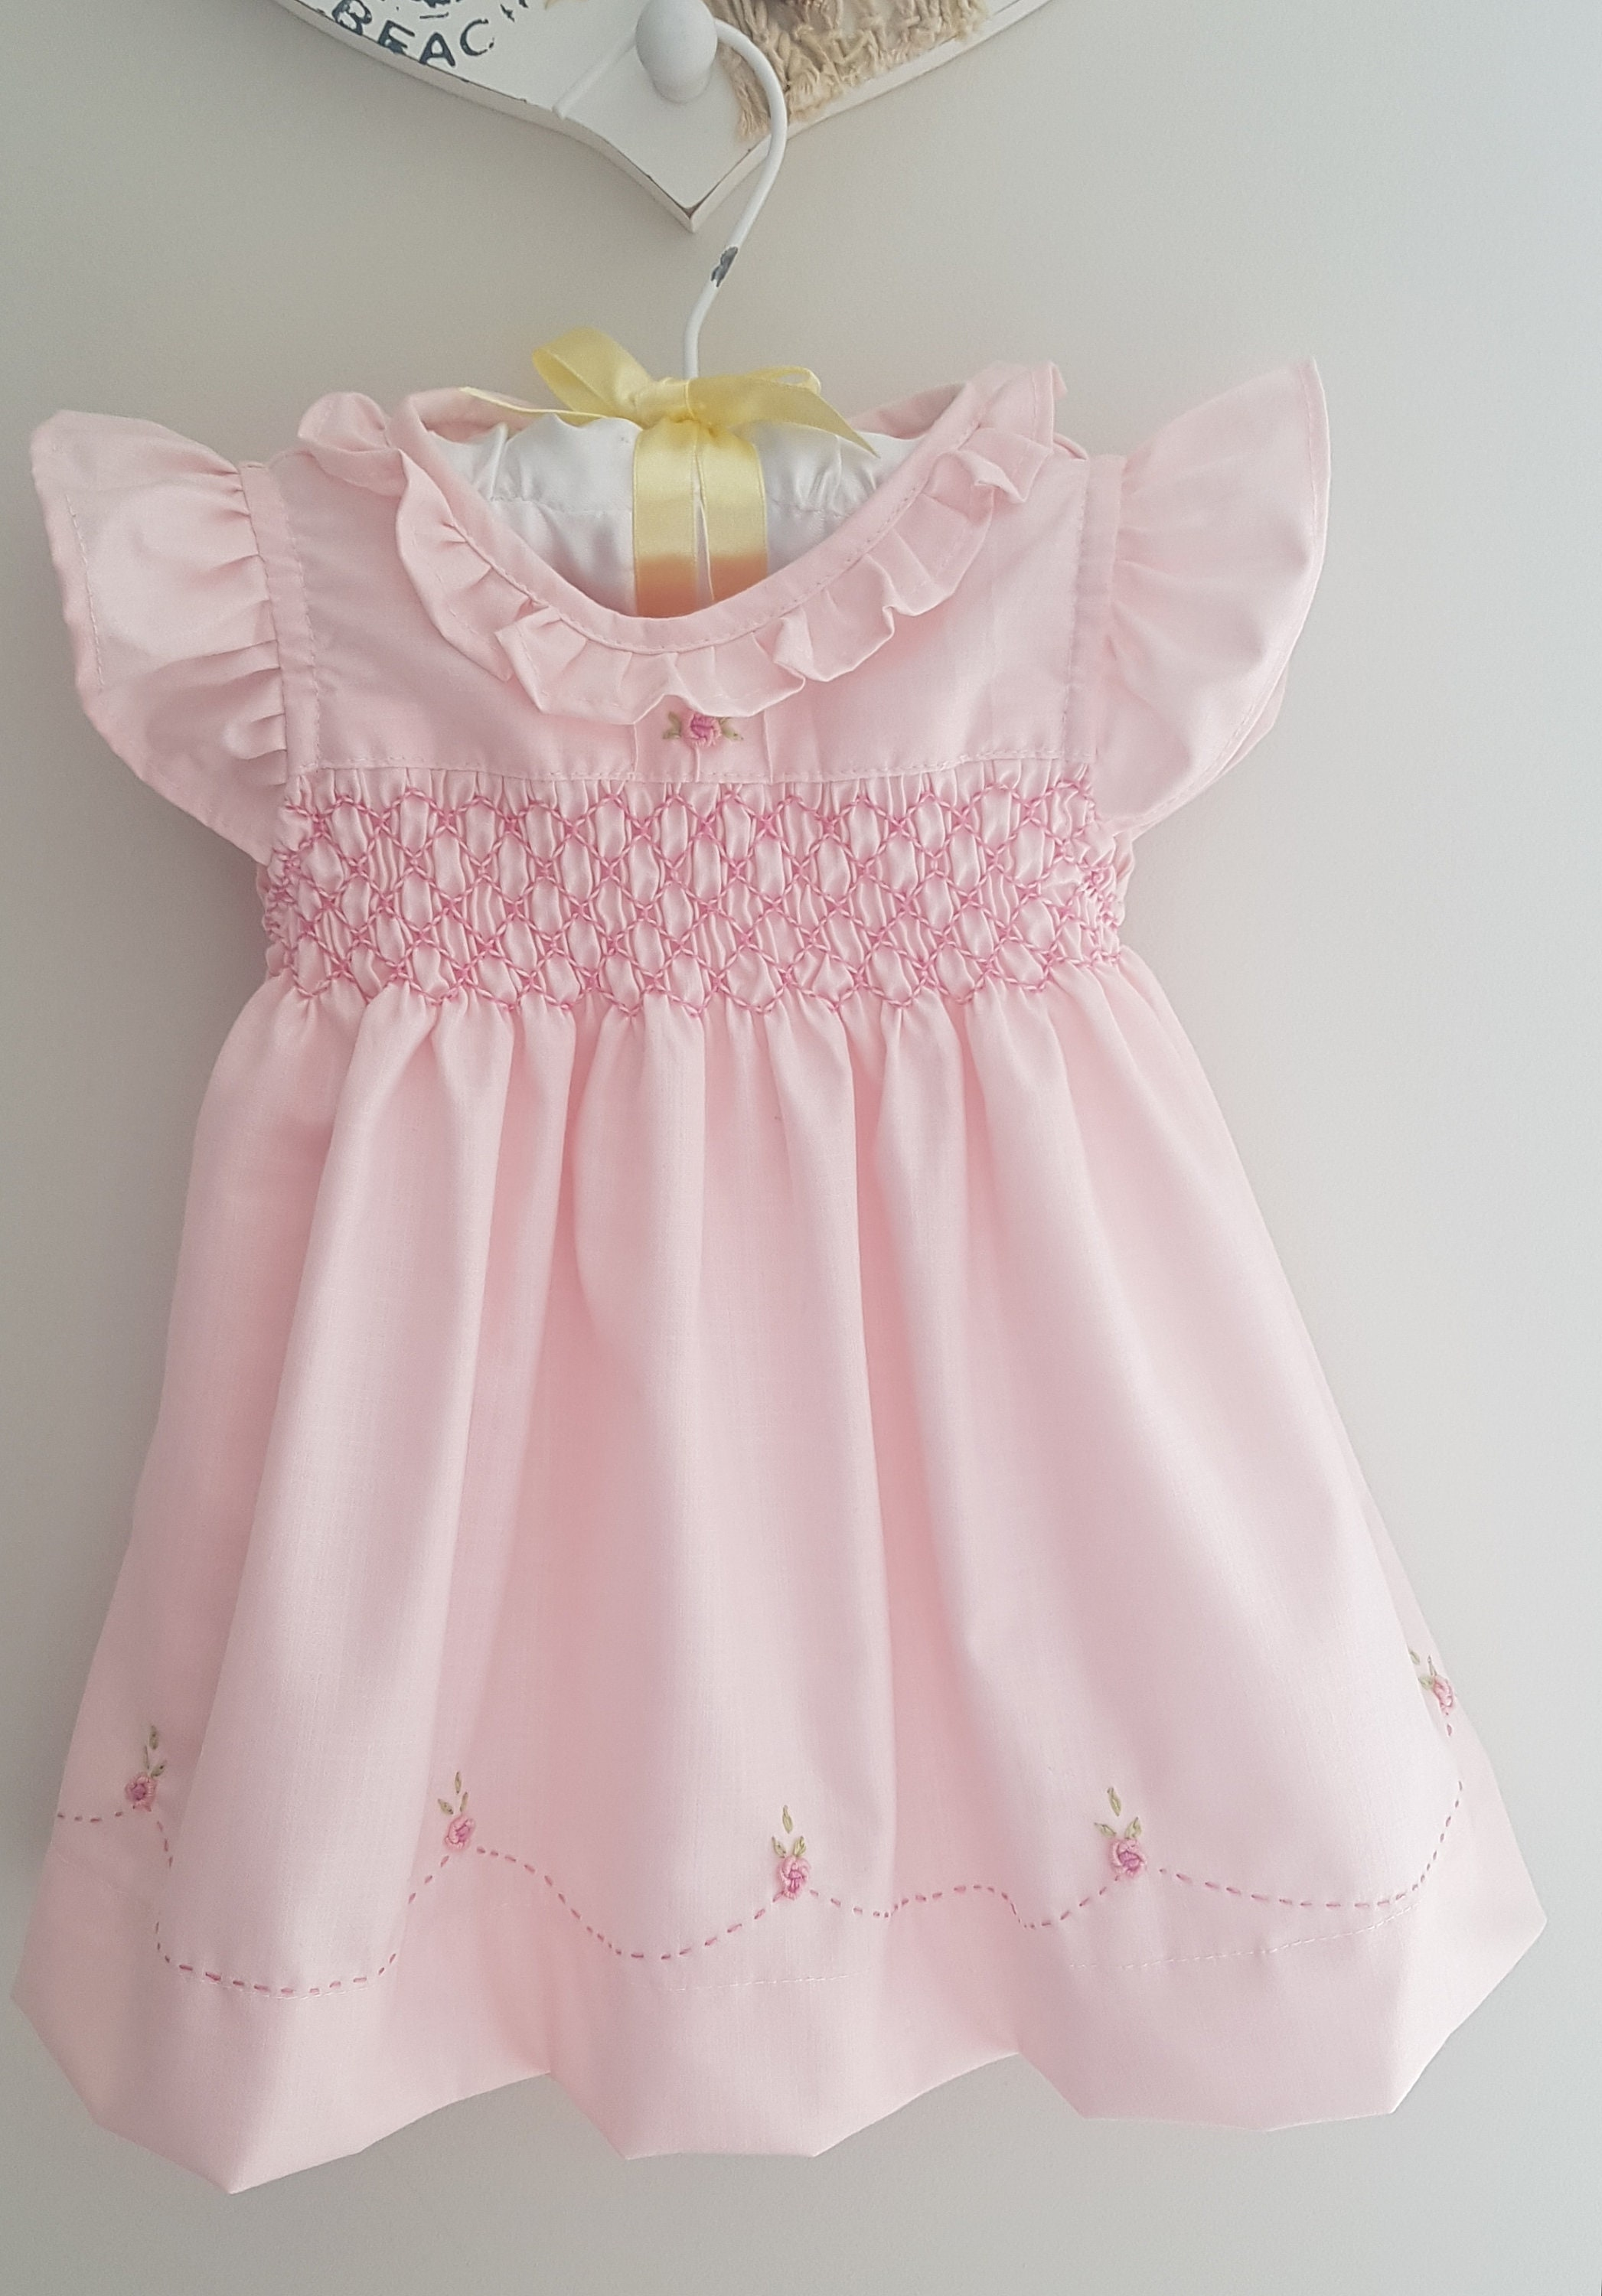 Stunning baby pink hand smocked baby dress with beautiful hand embroidery